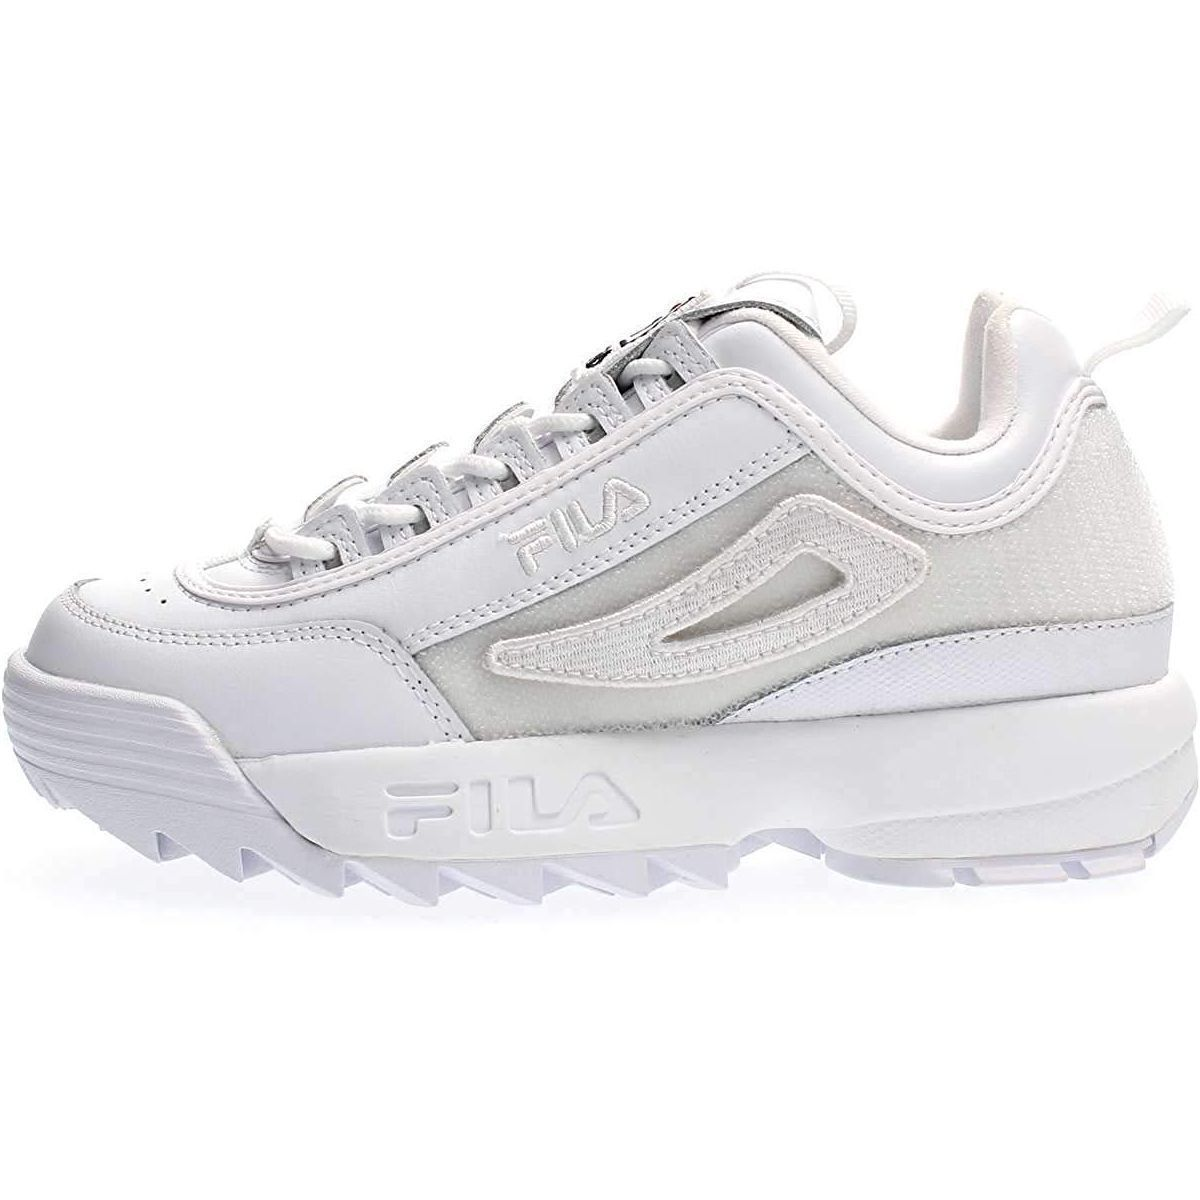 Fila femme disruptor 2 patches blanc